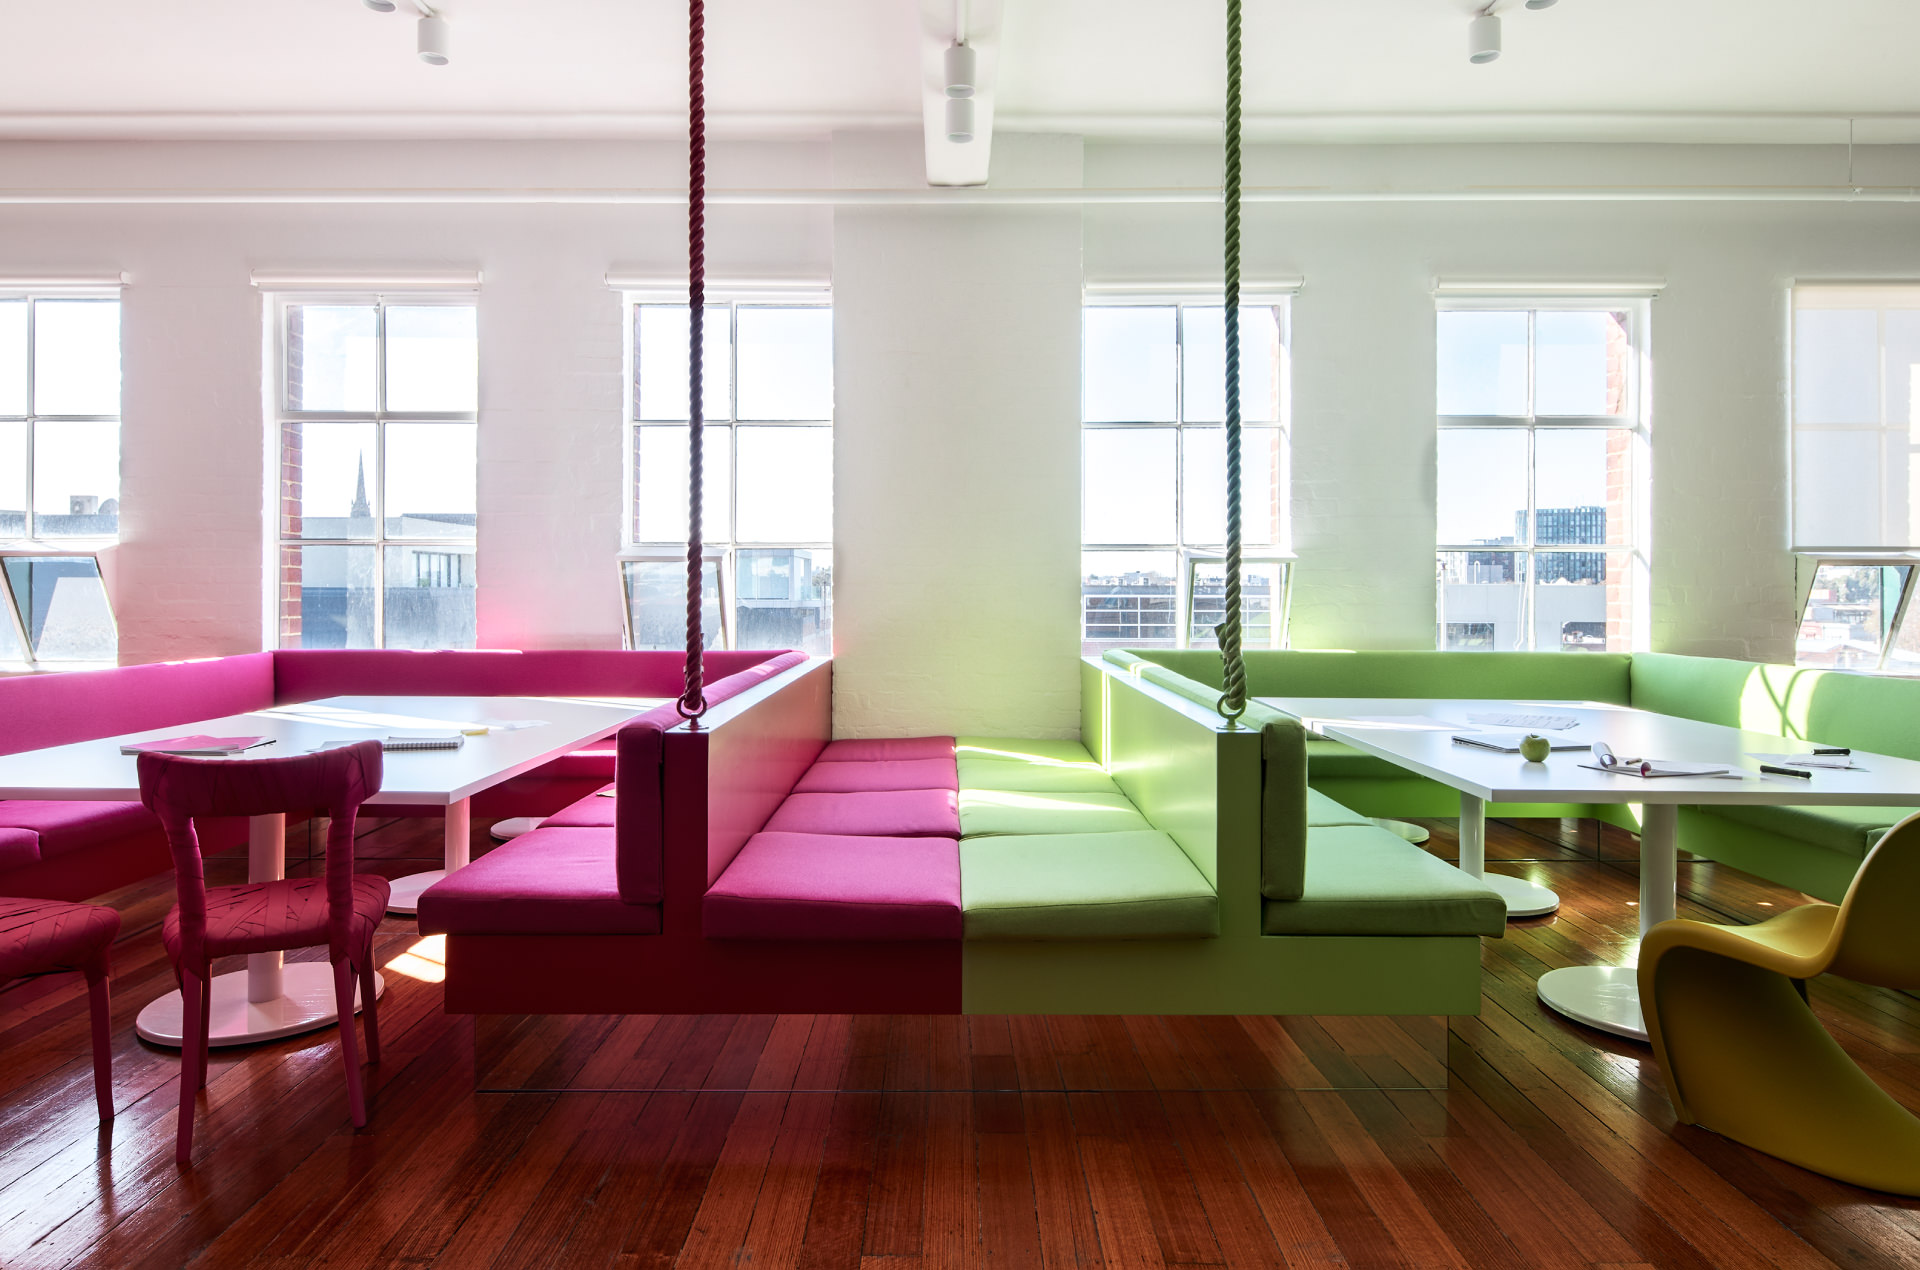 Cera Stribley Architecture Interior Design Thinkerbell pink and green tables